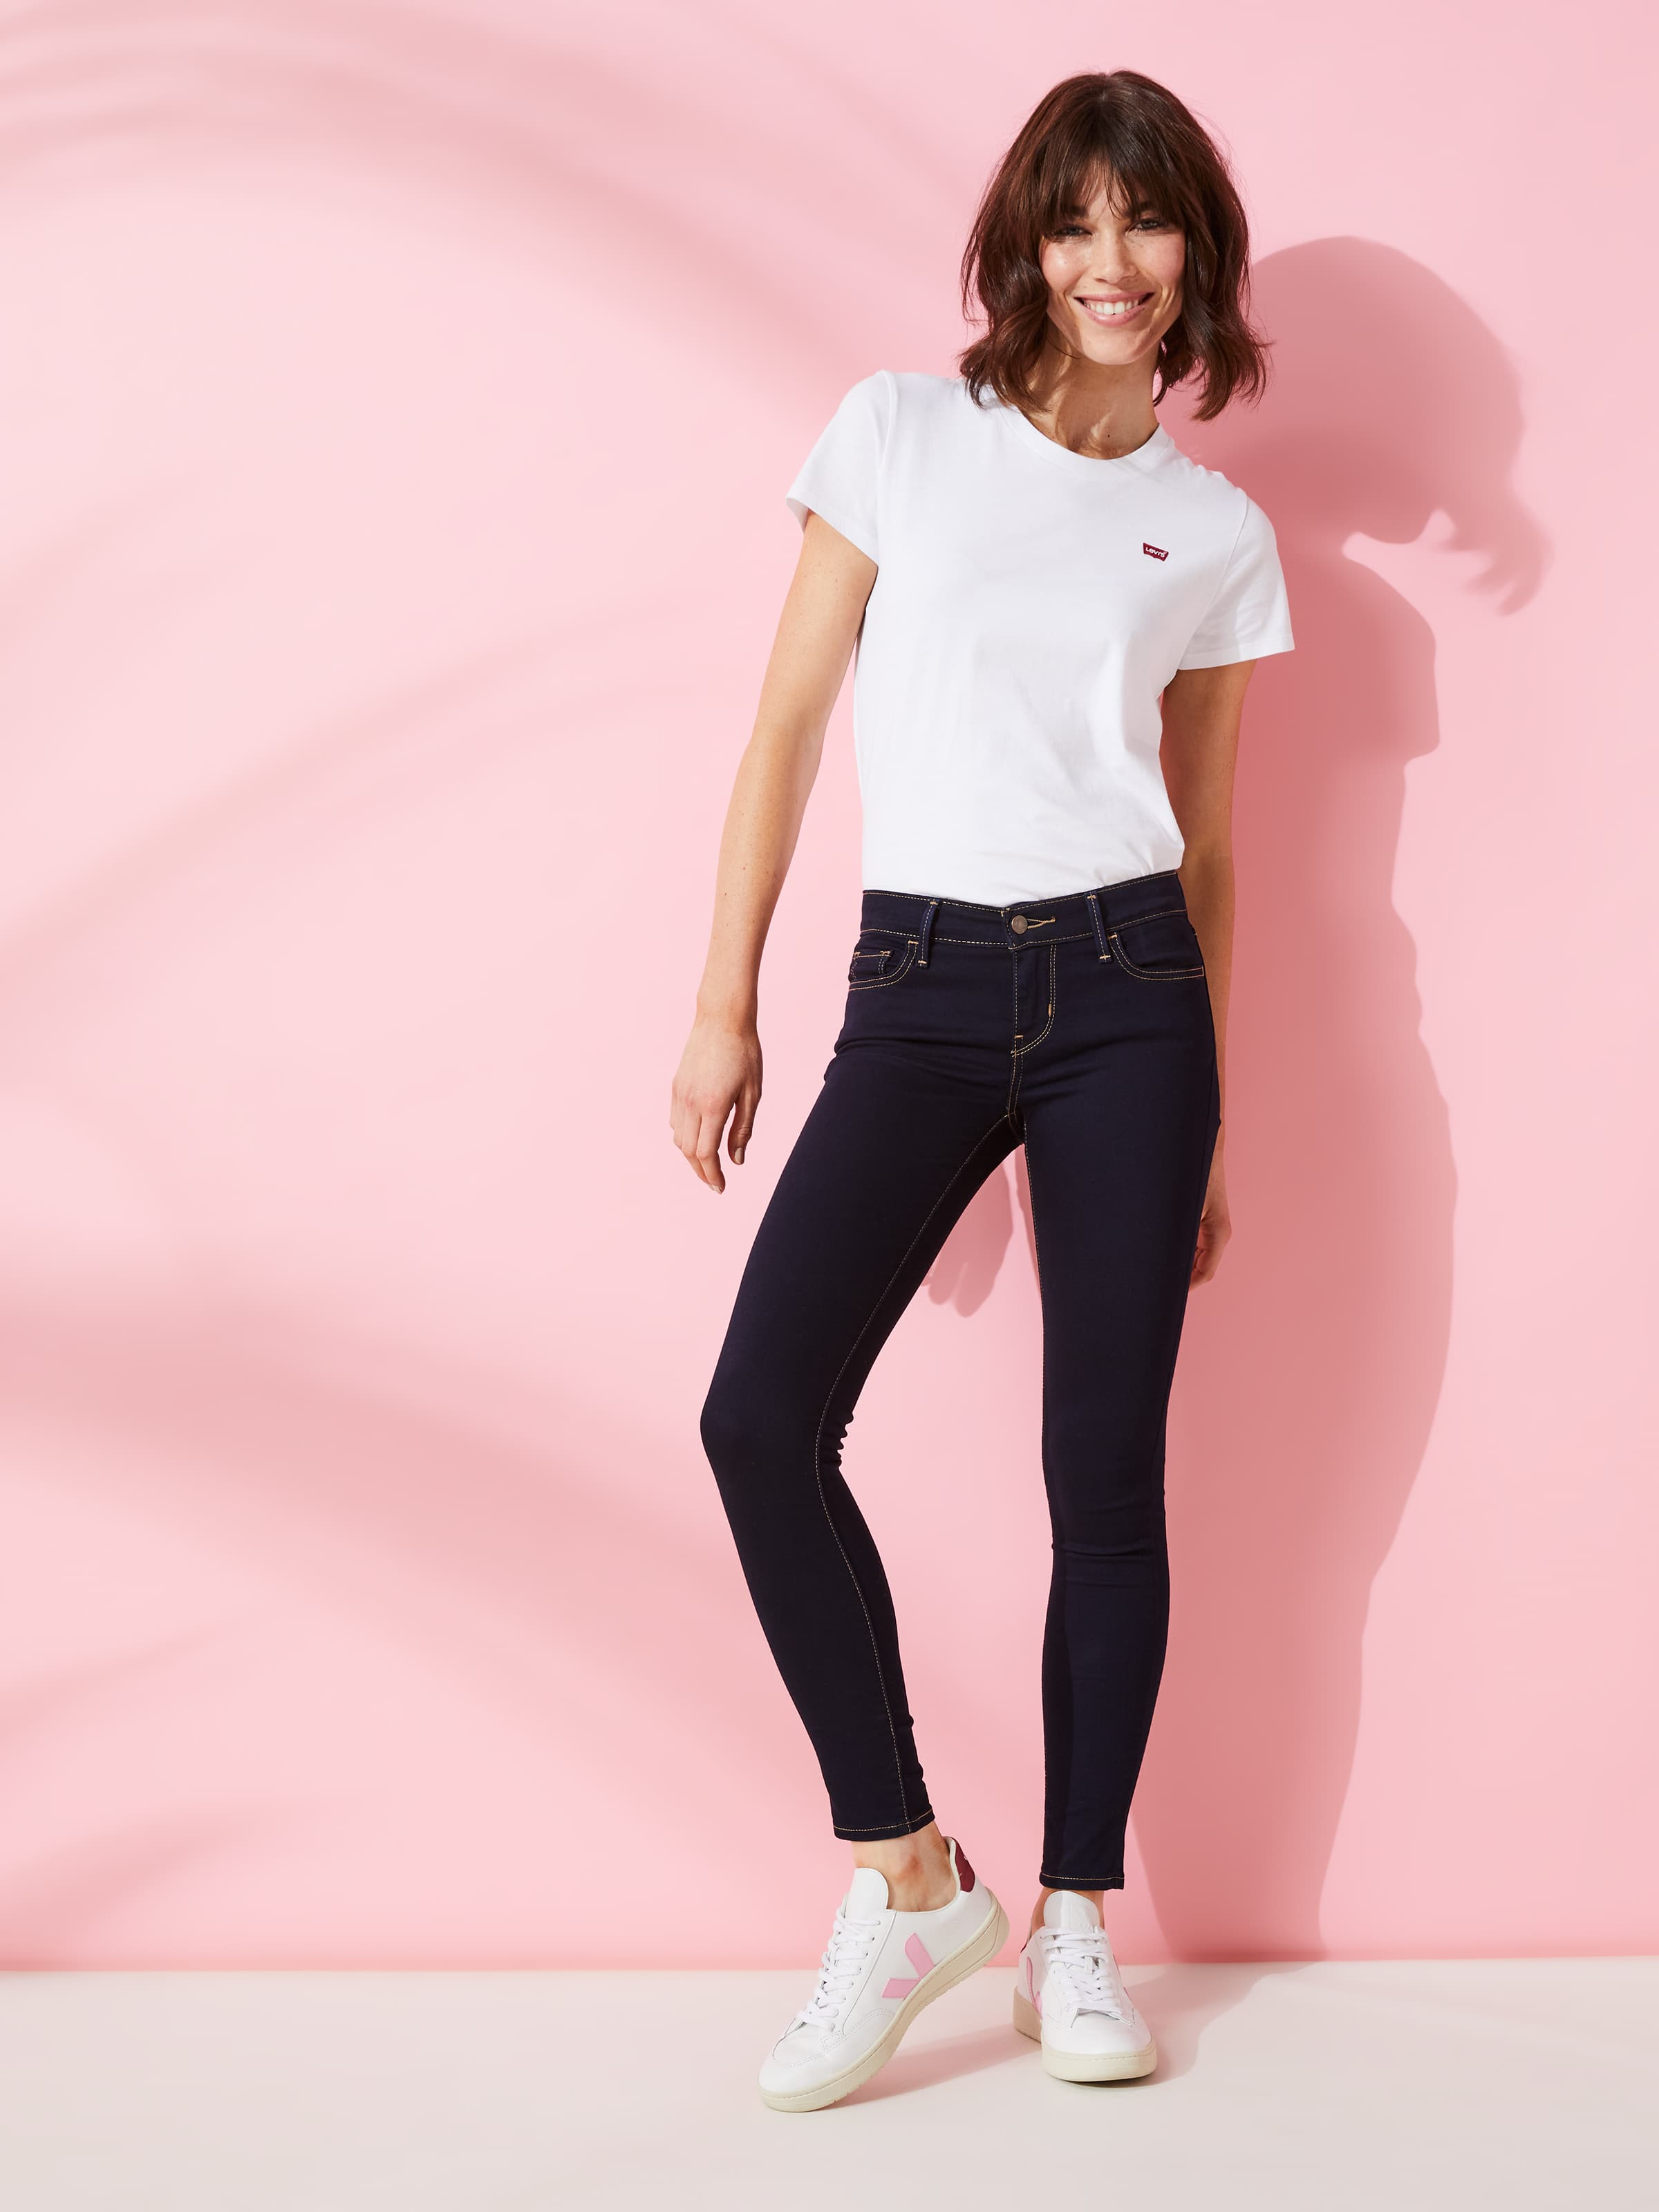 Imgenes De How To Get Super Skinny Leg Levis 710 Secluded Echo 17778 0034 Size 28 Image For Jean In Dusk Rinse From Just Jeans